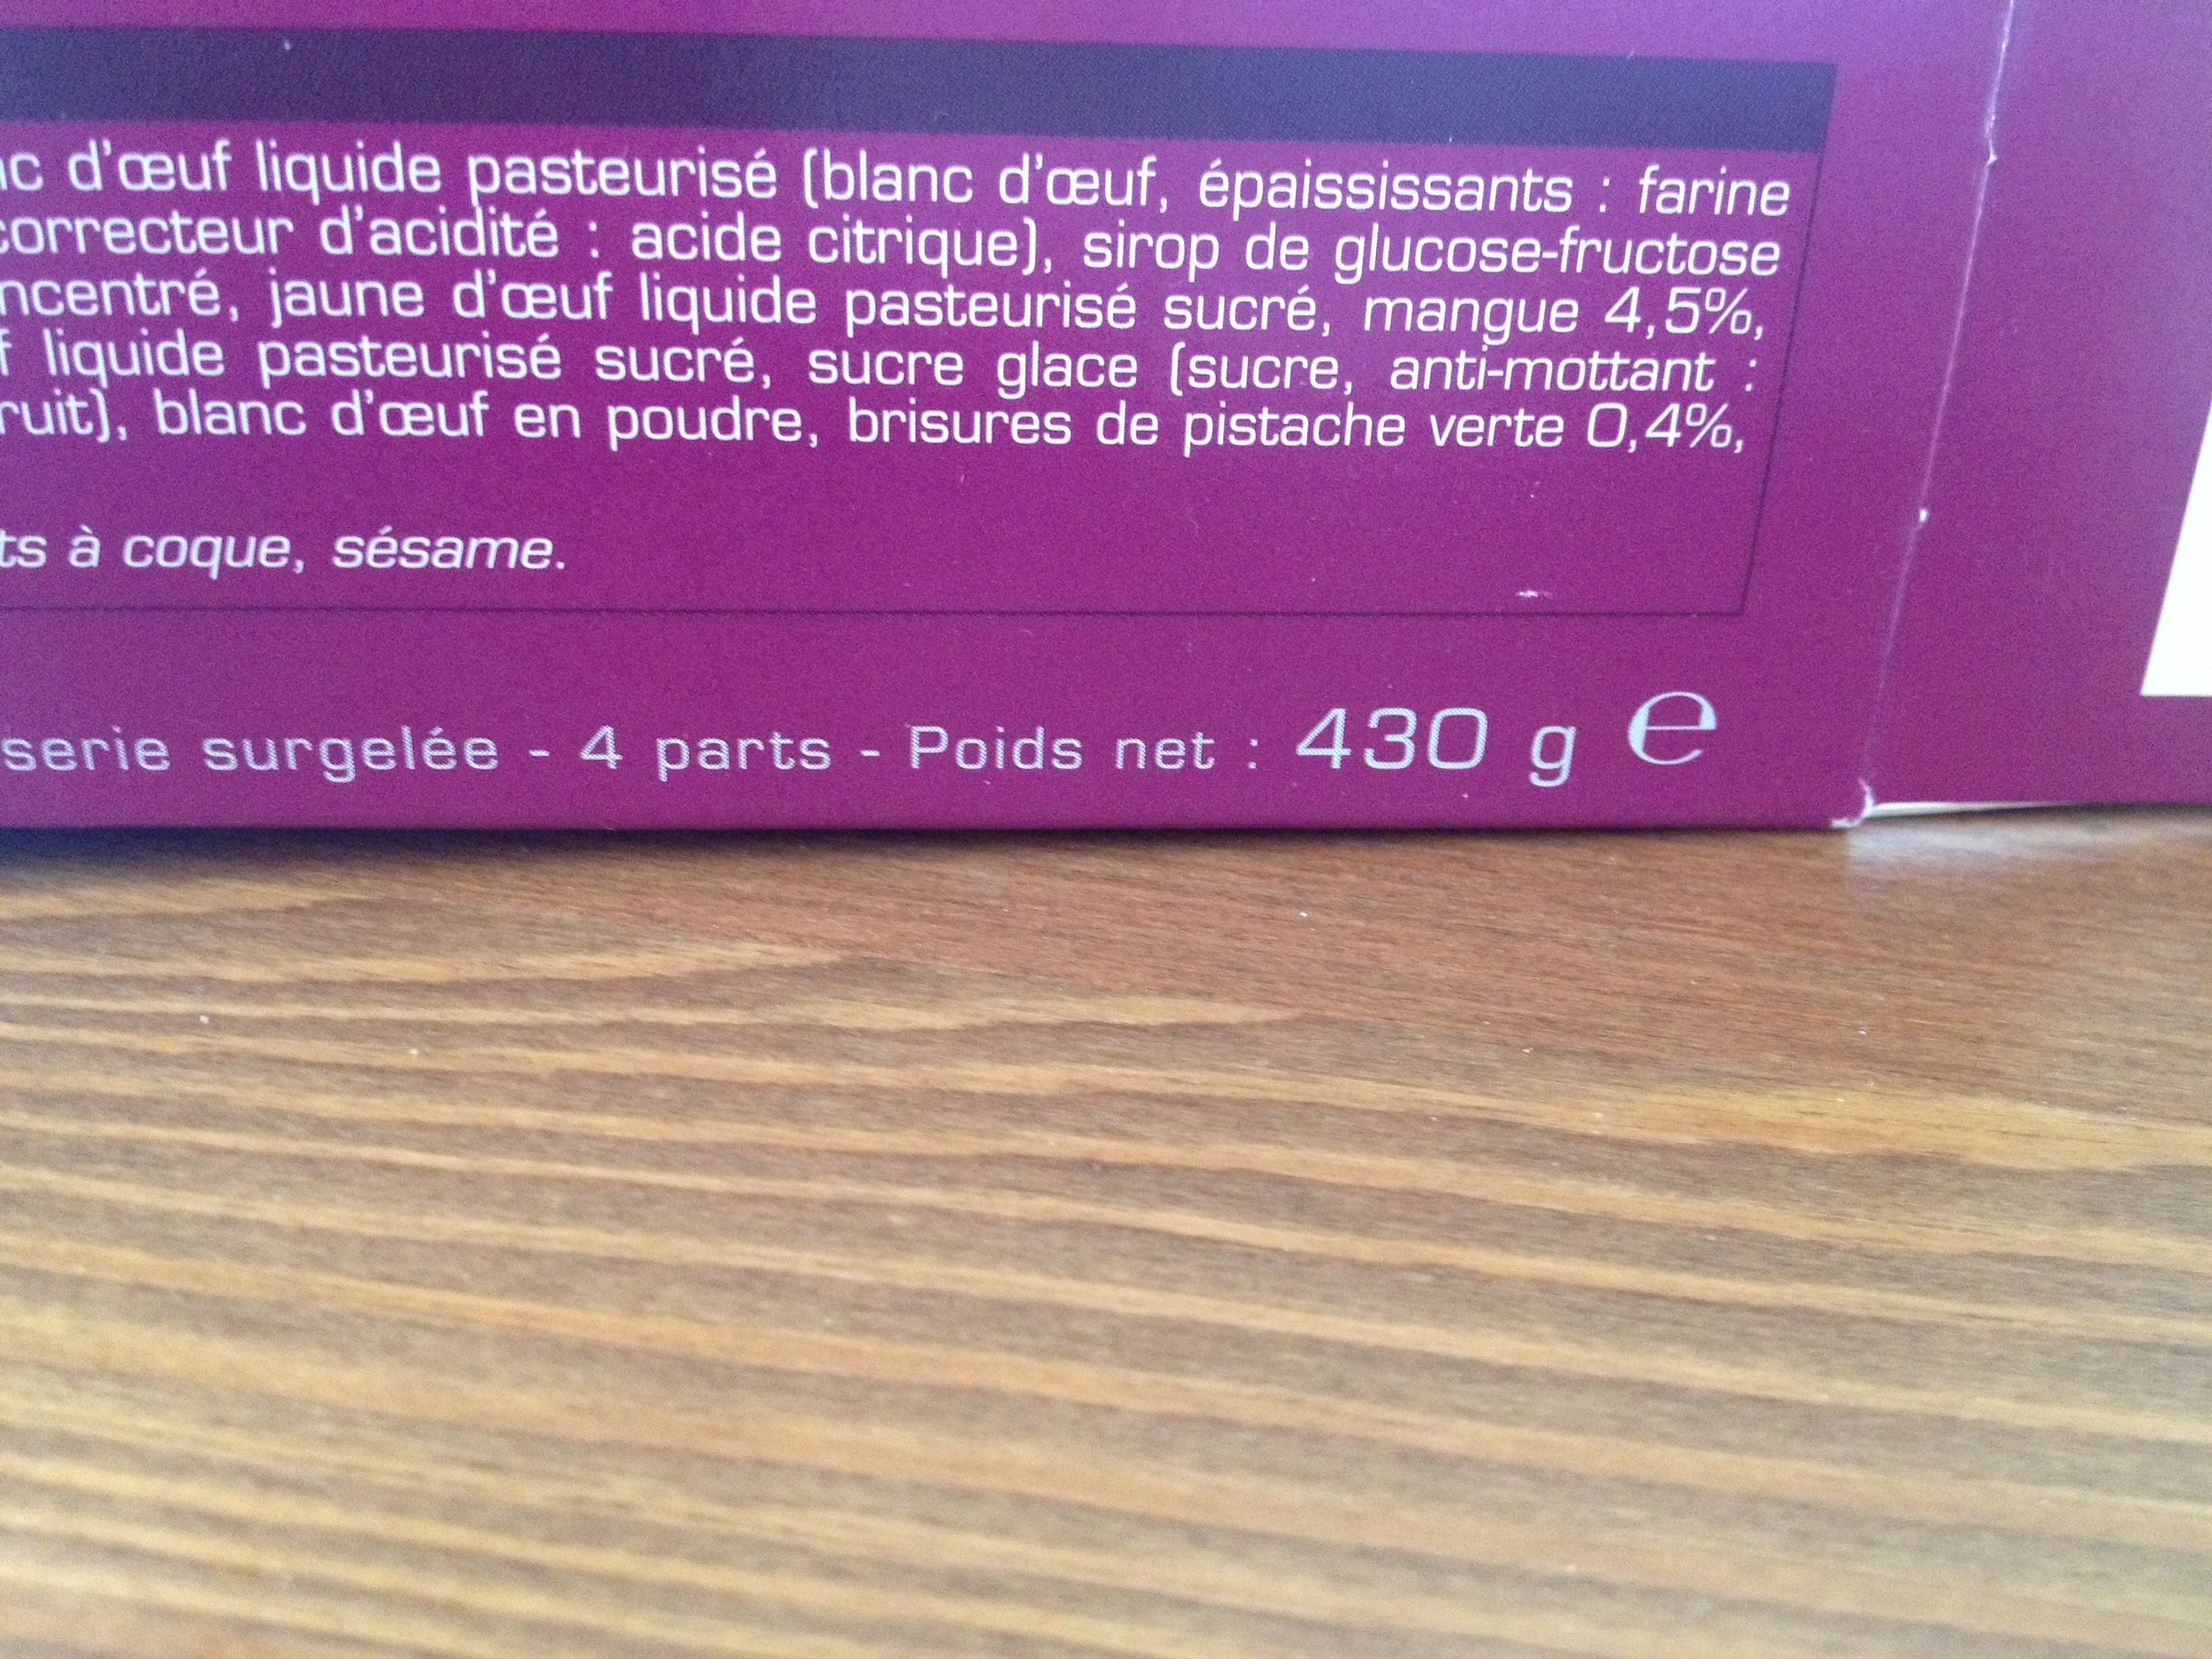 Tiramisu aux fruits - Picard - 430 g (4 parts)